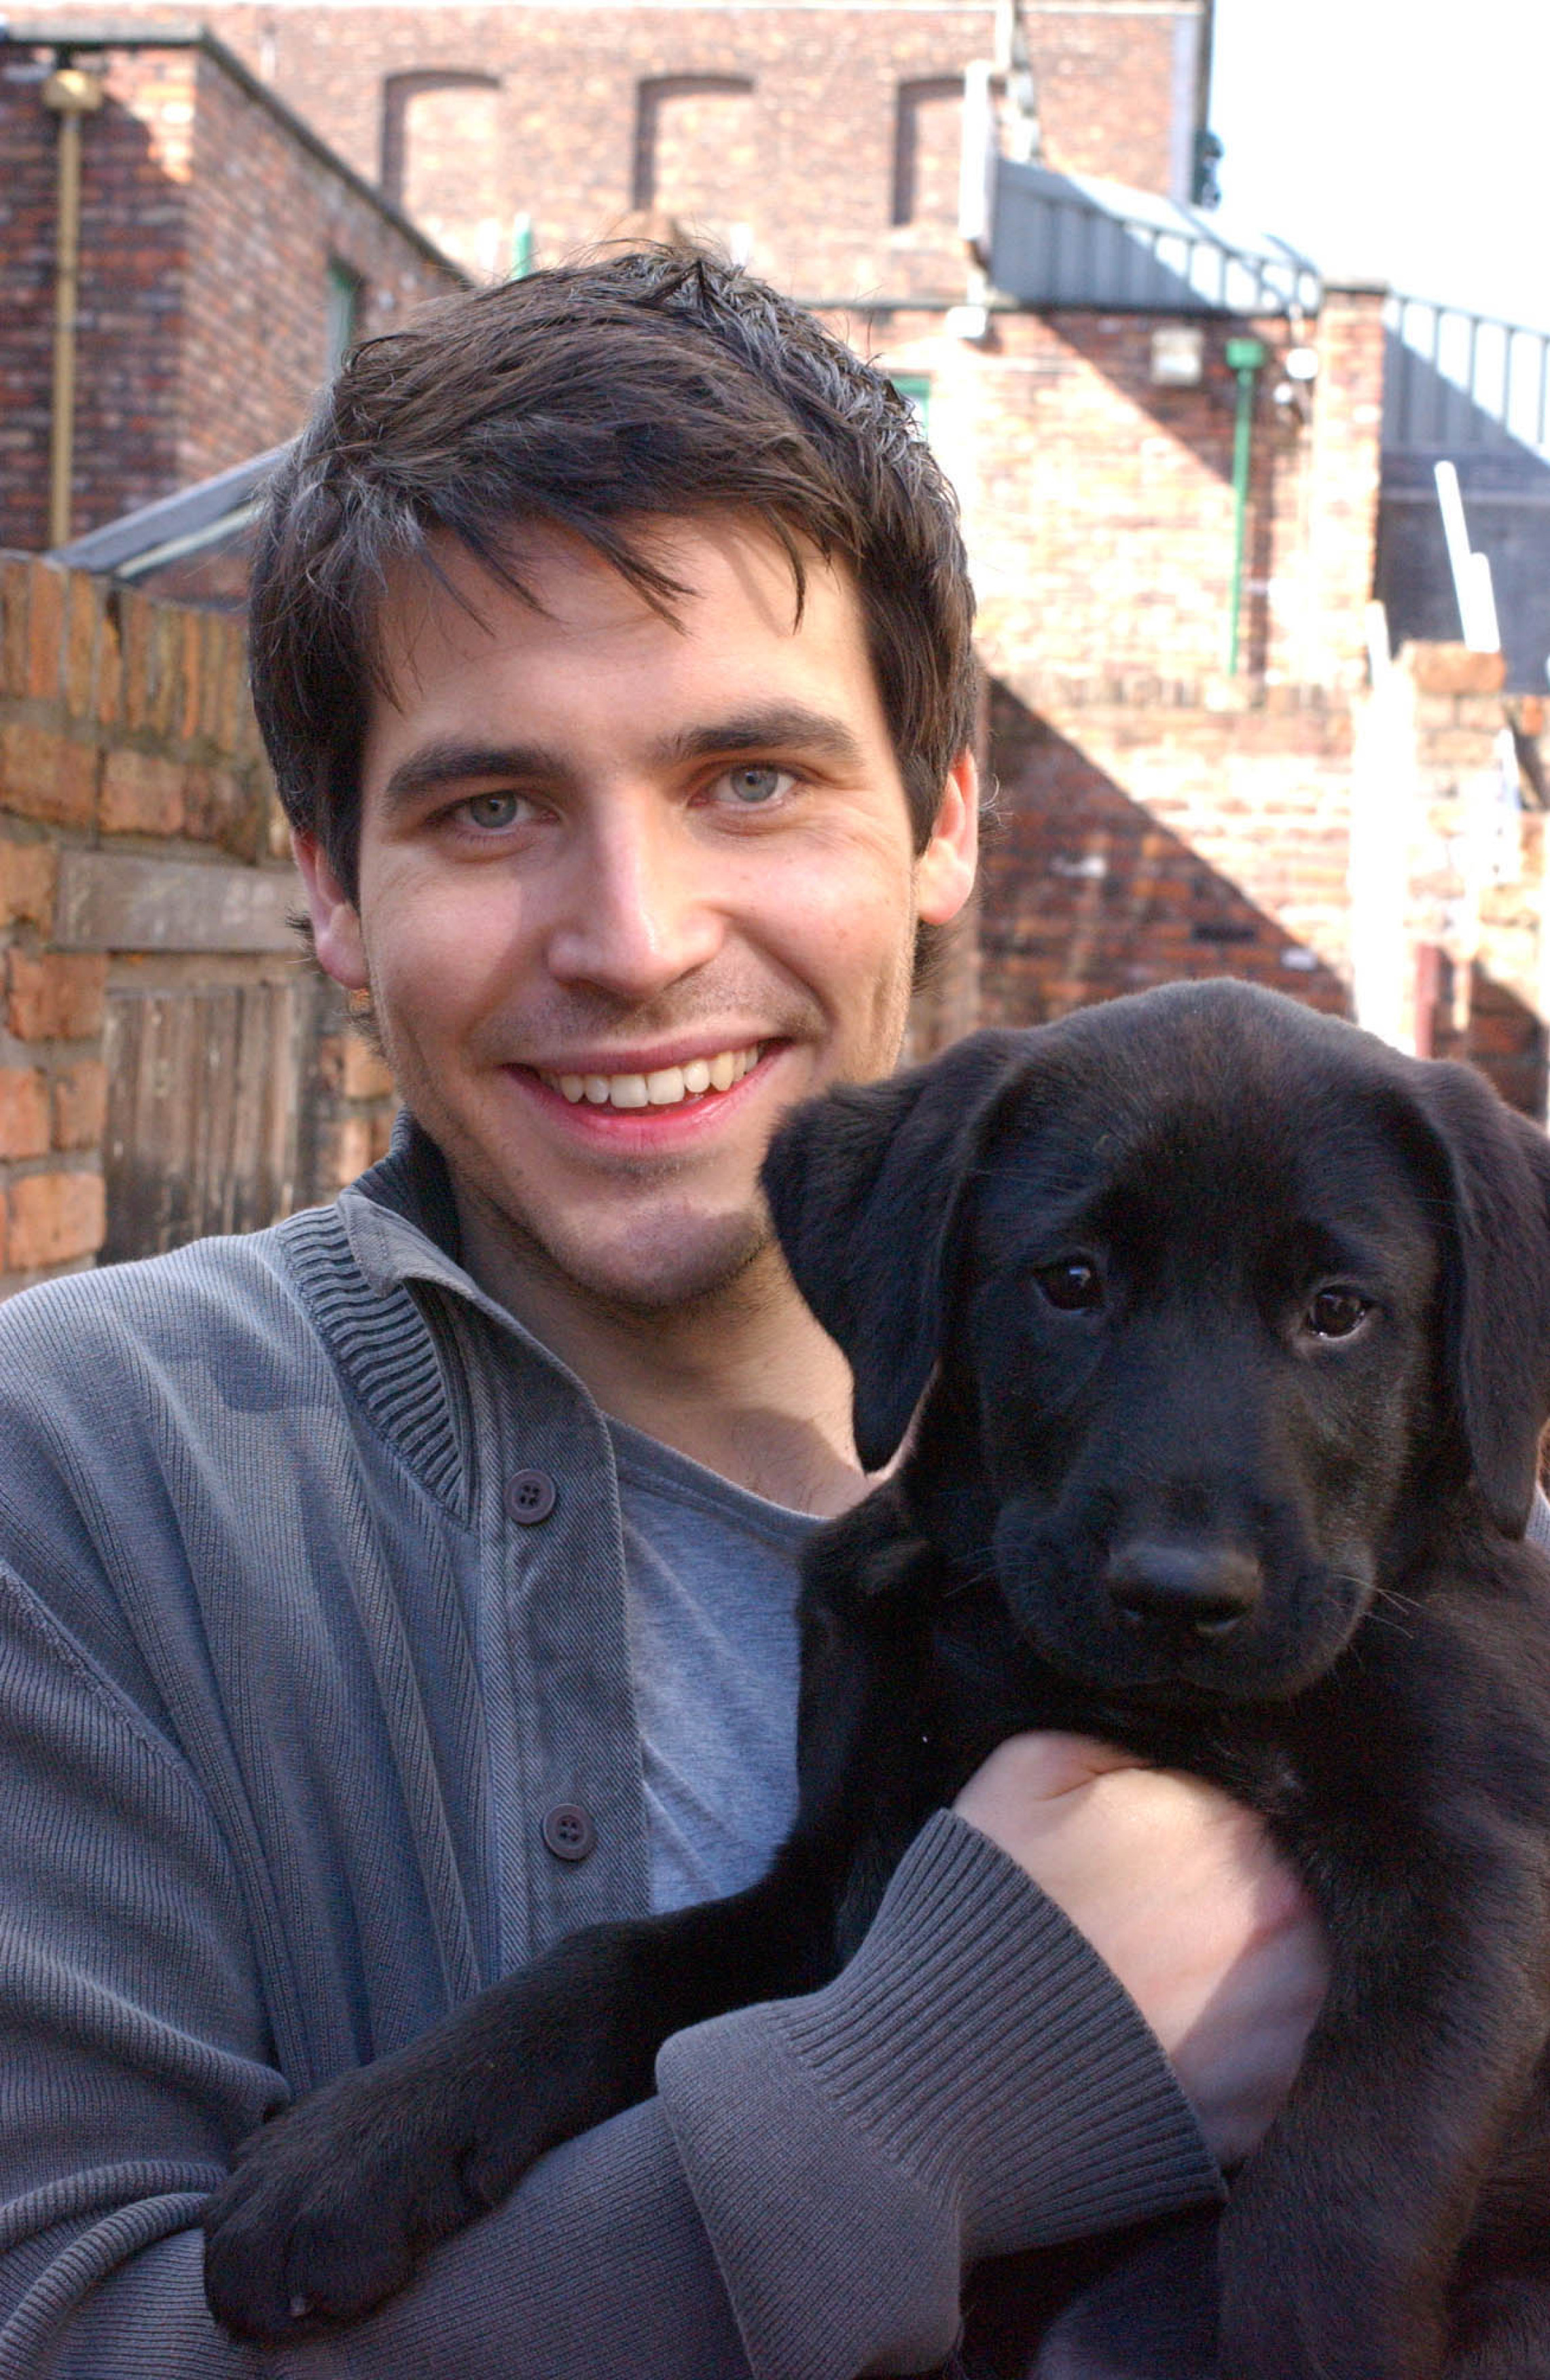 Editorial use only. Exclusive - Premium Rates Apply. Call your Account Manager for pricing. Mandatory Credit: Photo by ITV/REX/Shutterstock (805535ik) 'Coronation Street' TV - 2007 - , Maria Sutherland buys Liam Connor [Rob James -Collier] a present - a puppy called Ozzy. ITV ARCHIVE